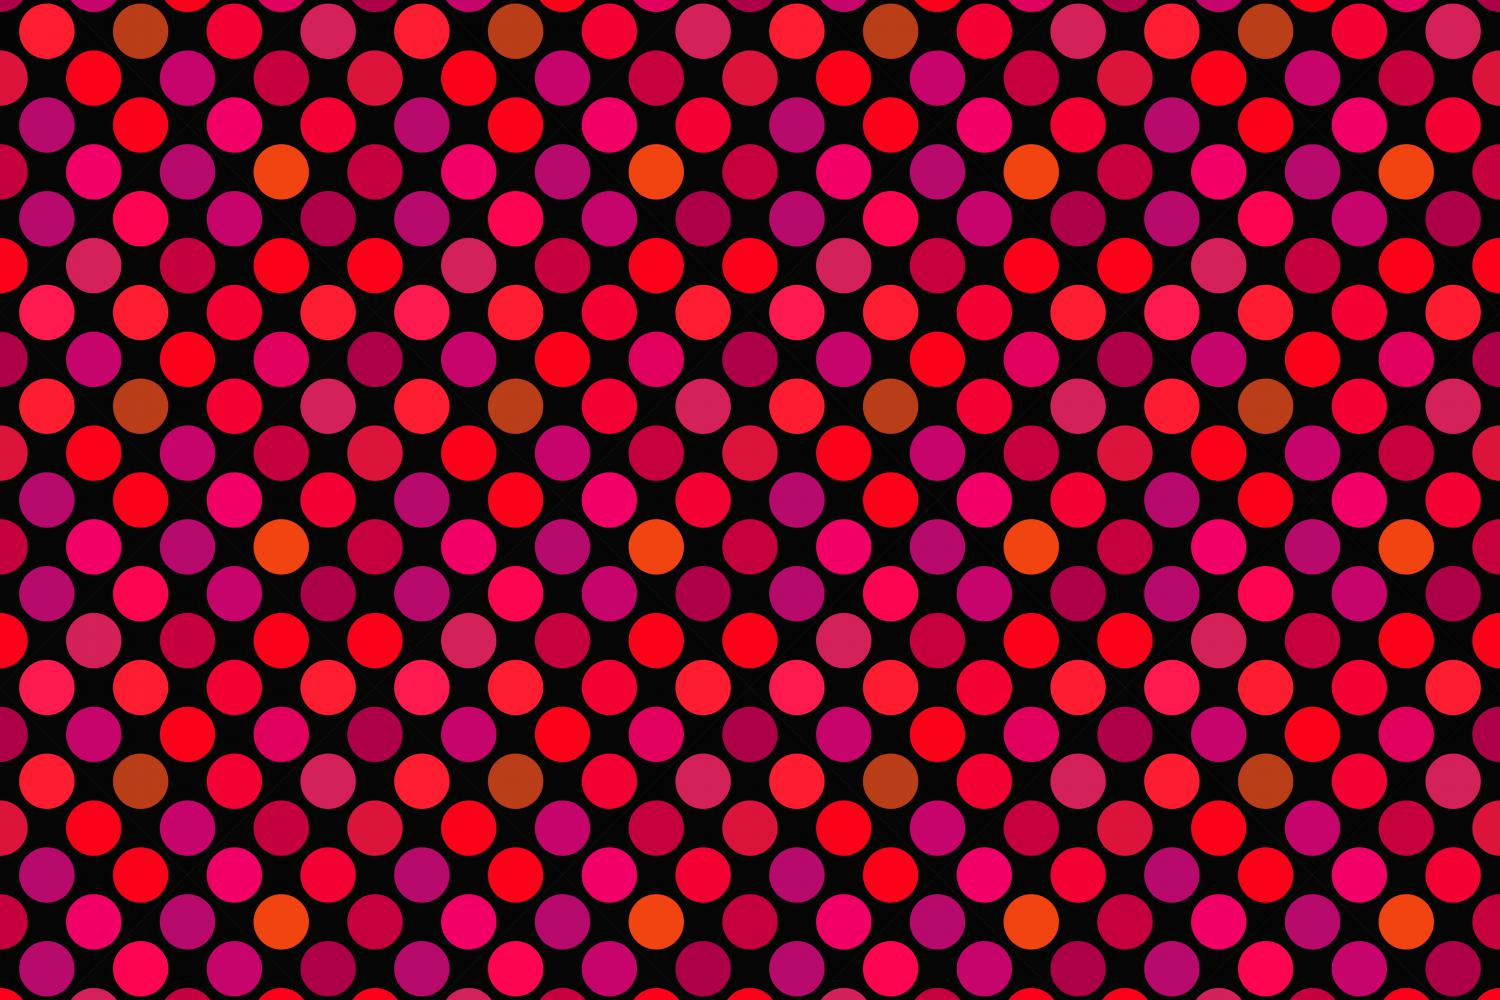 24 Seamless Red Dot Patterns example image 14